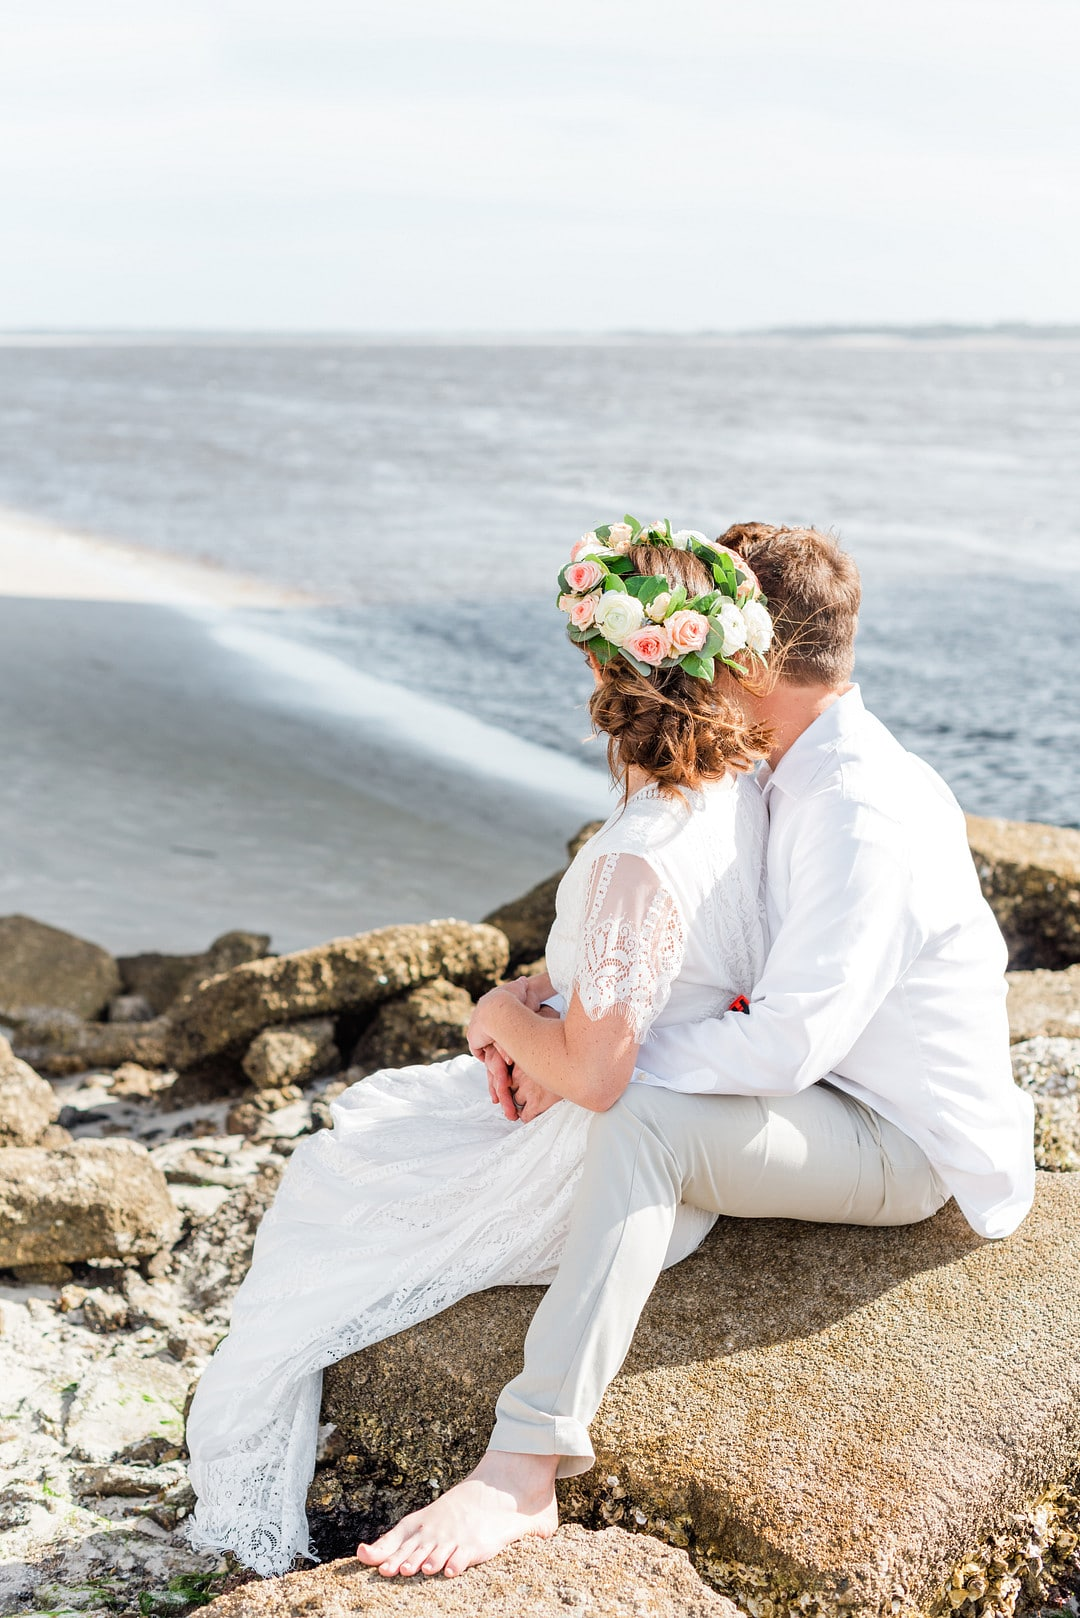 Romantic, Spring Styled Wedding with Horses on the Beach_Christine Austin Photography_©christineaustinphotography_2021_RomanticBeachStyledShoot_Austin+Naomi_21_low